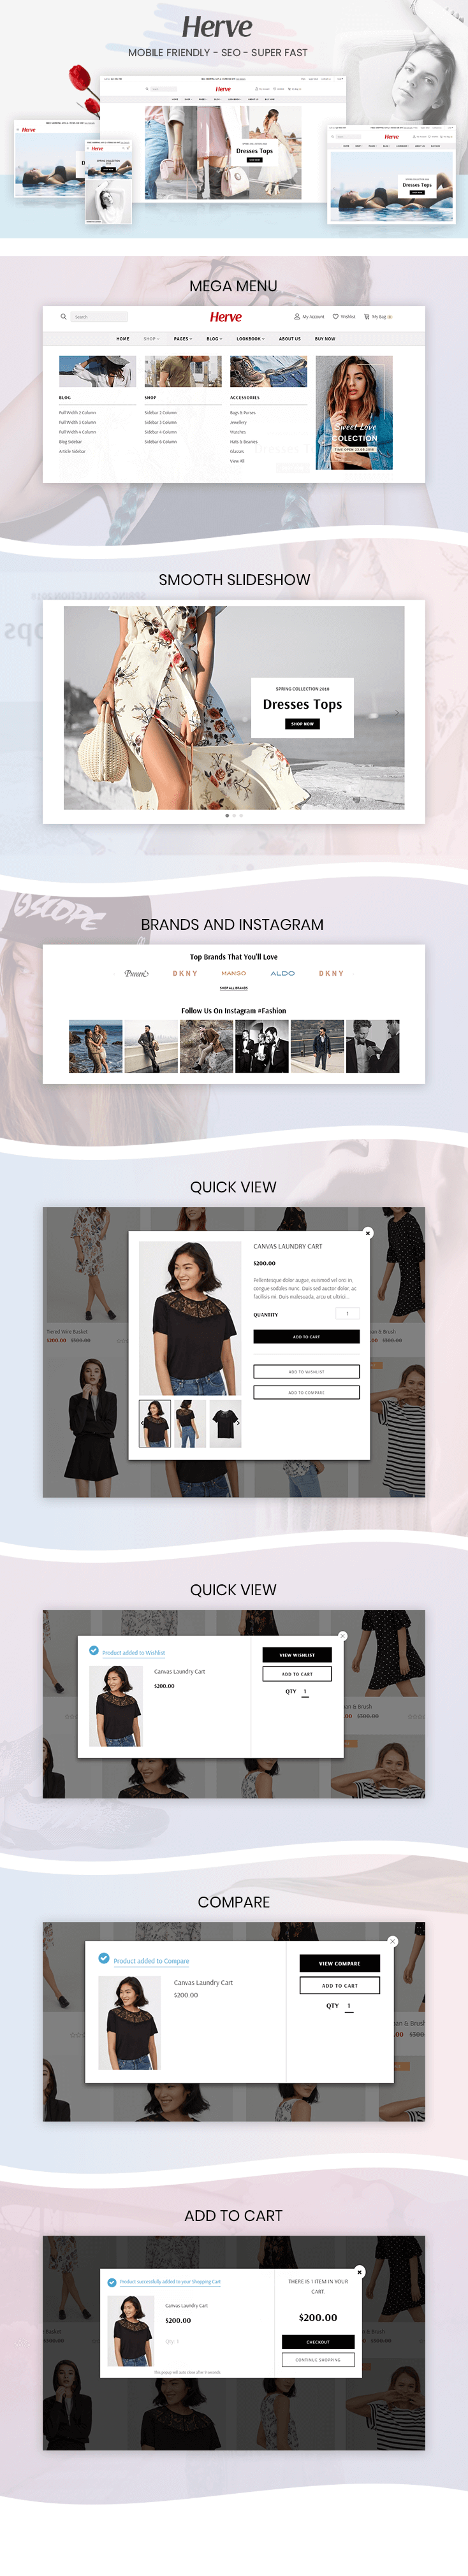 Shopify Harve Features